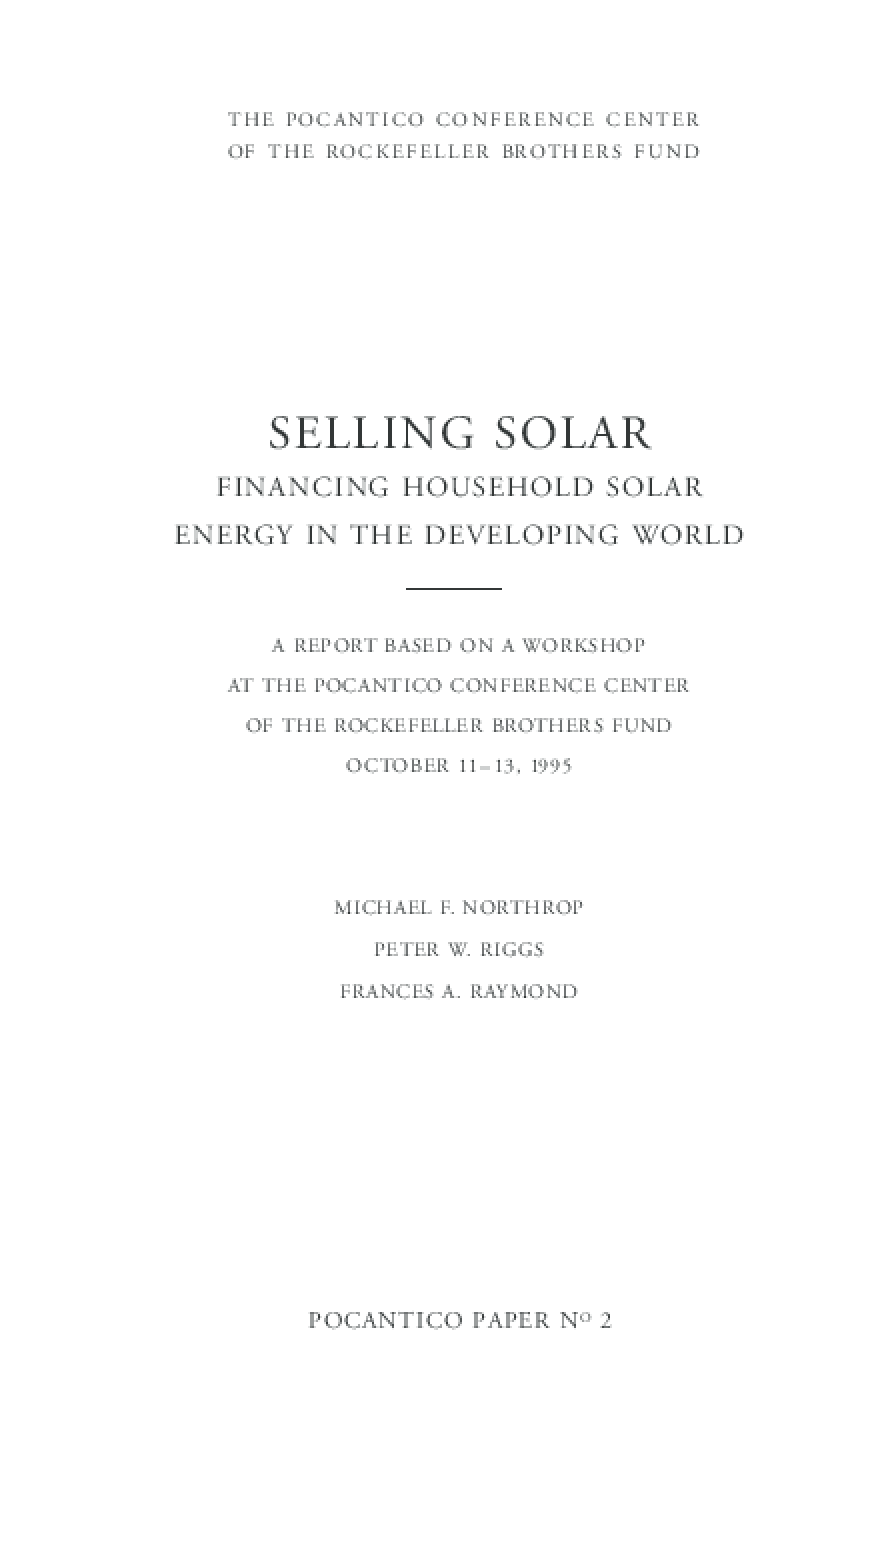 Selling Solar: Financing Household Solar Energy in the Developing World